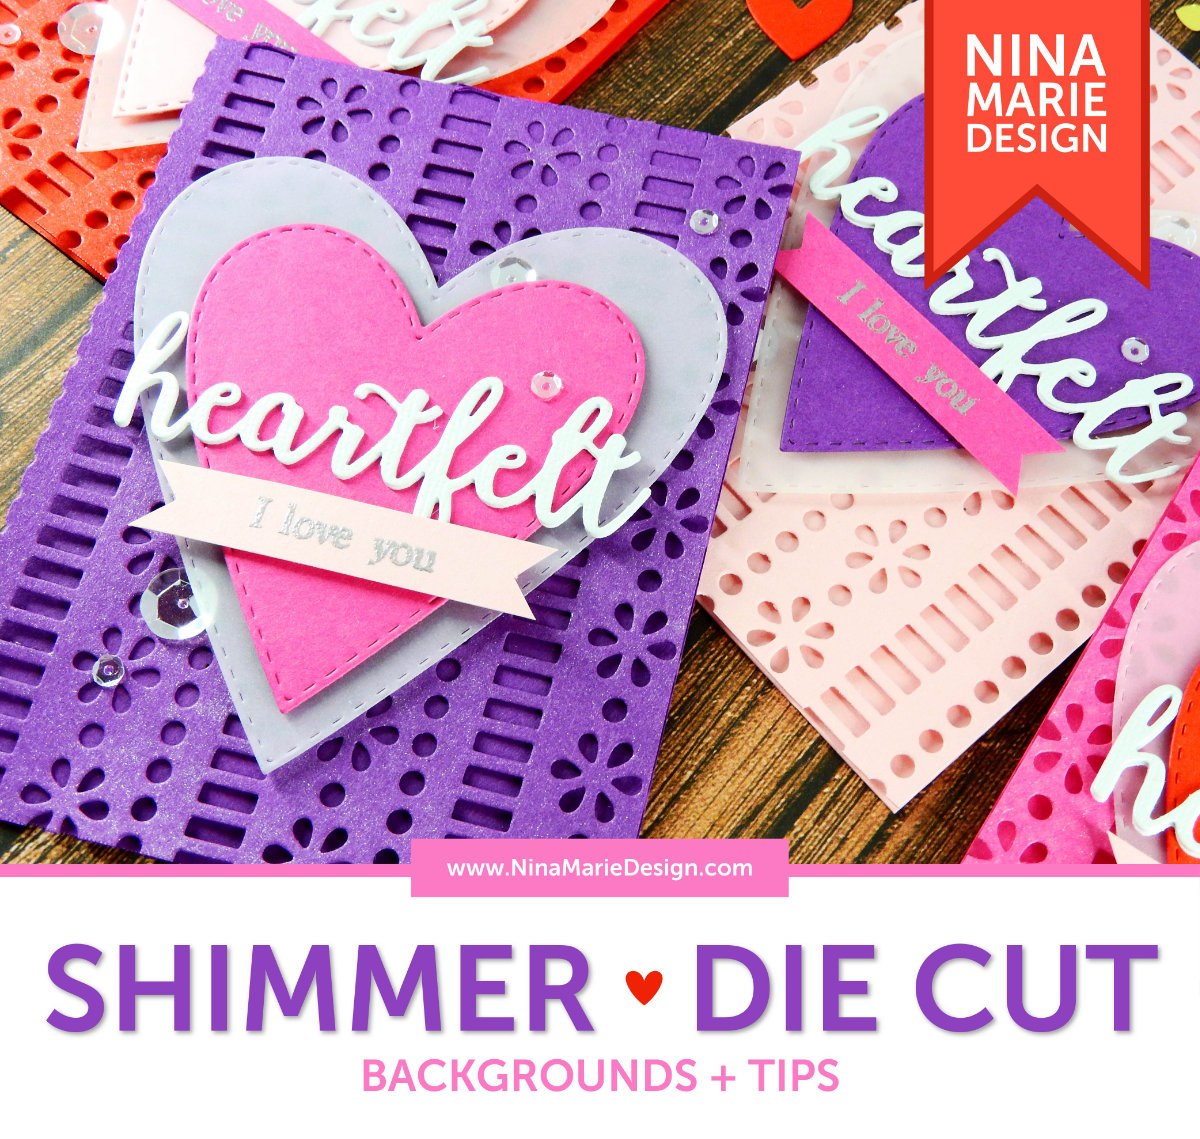 Shimmer Die Cut Backgrounds + Tips | Nina-Marie Design